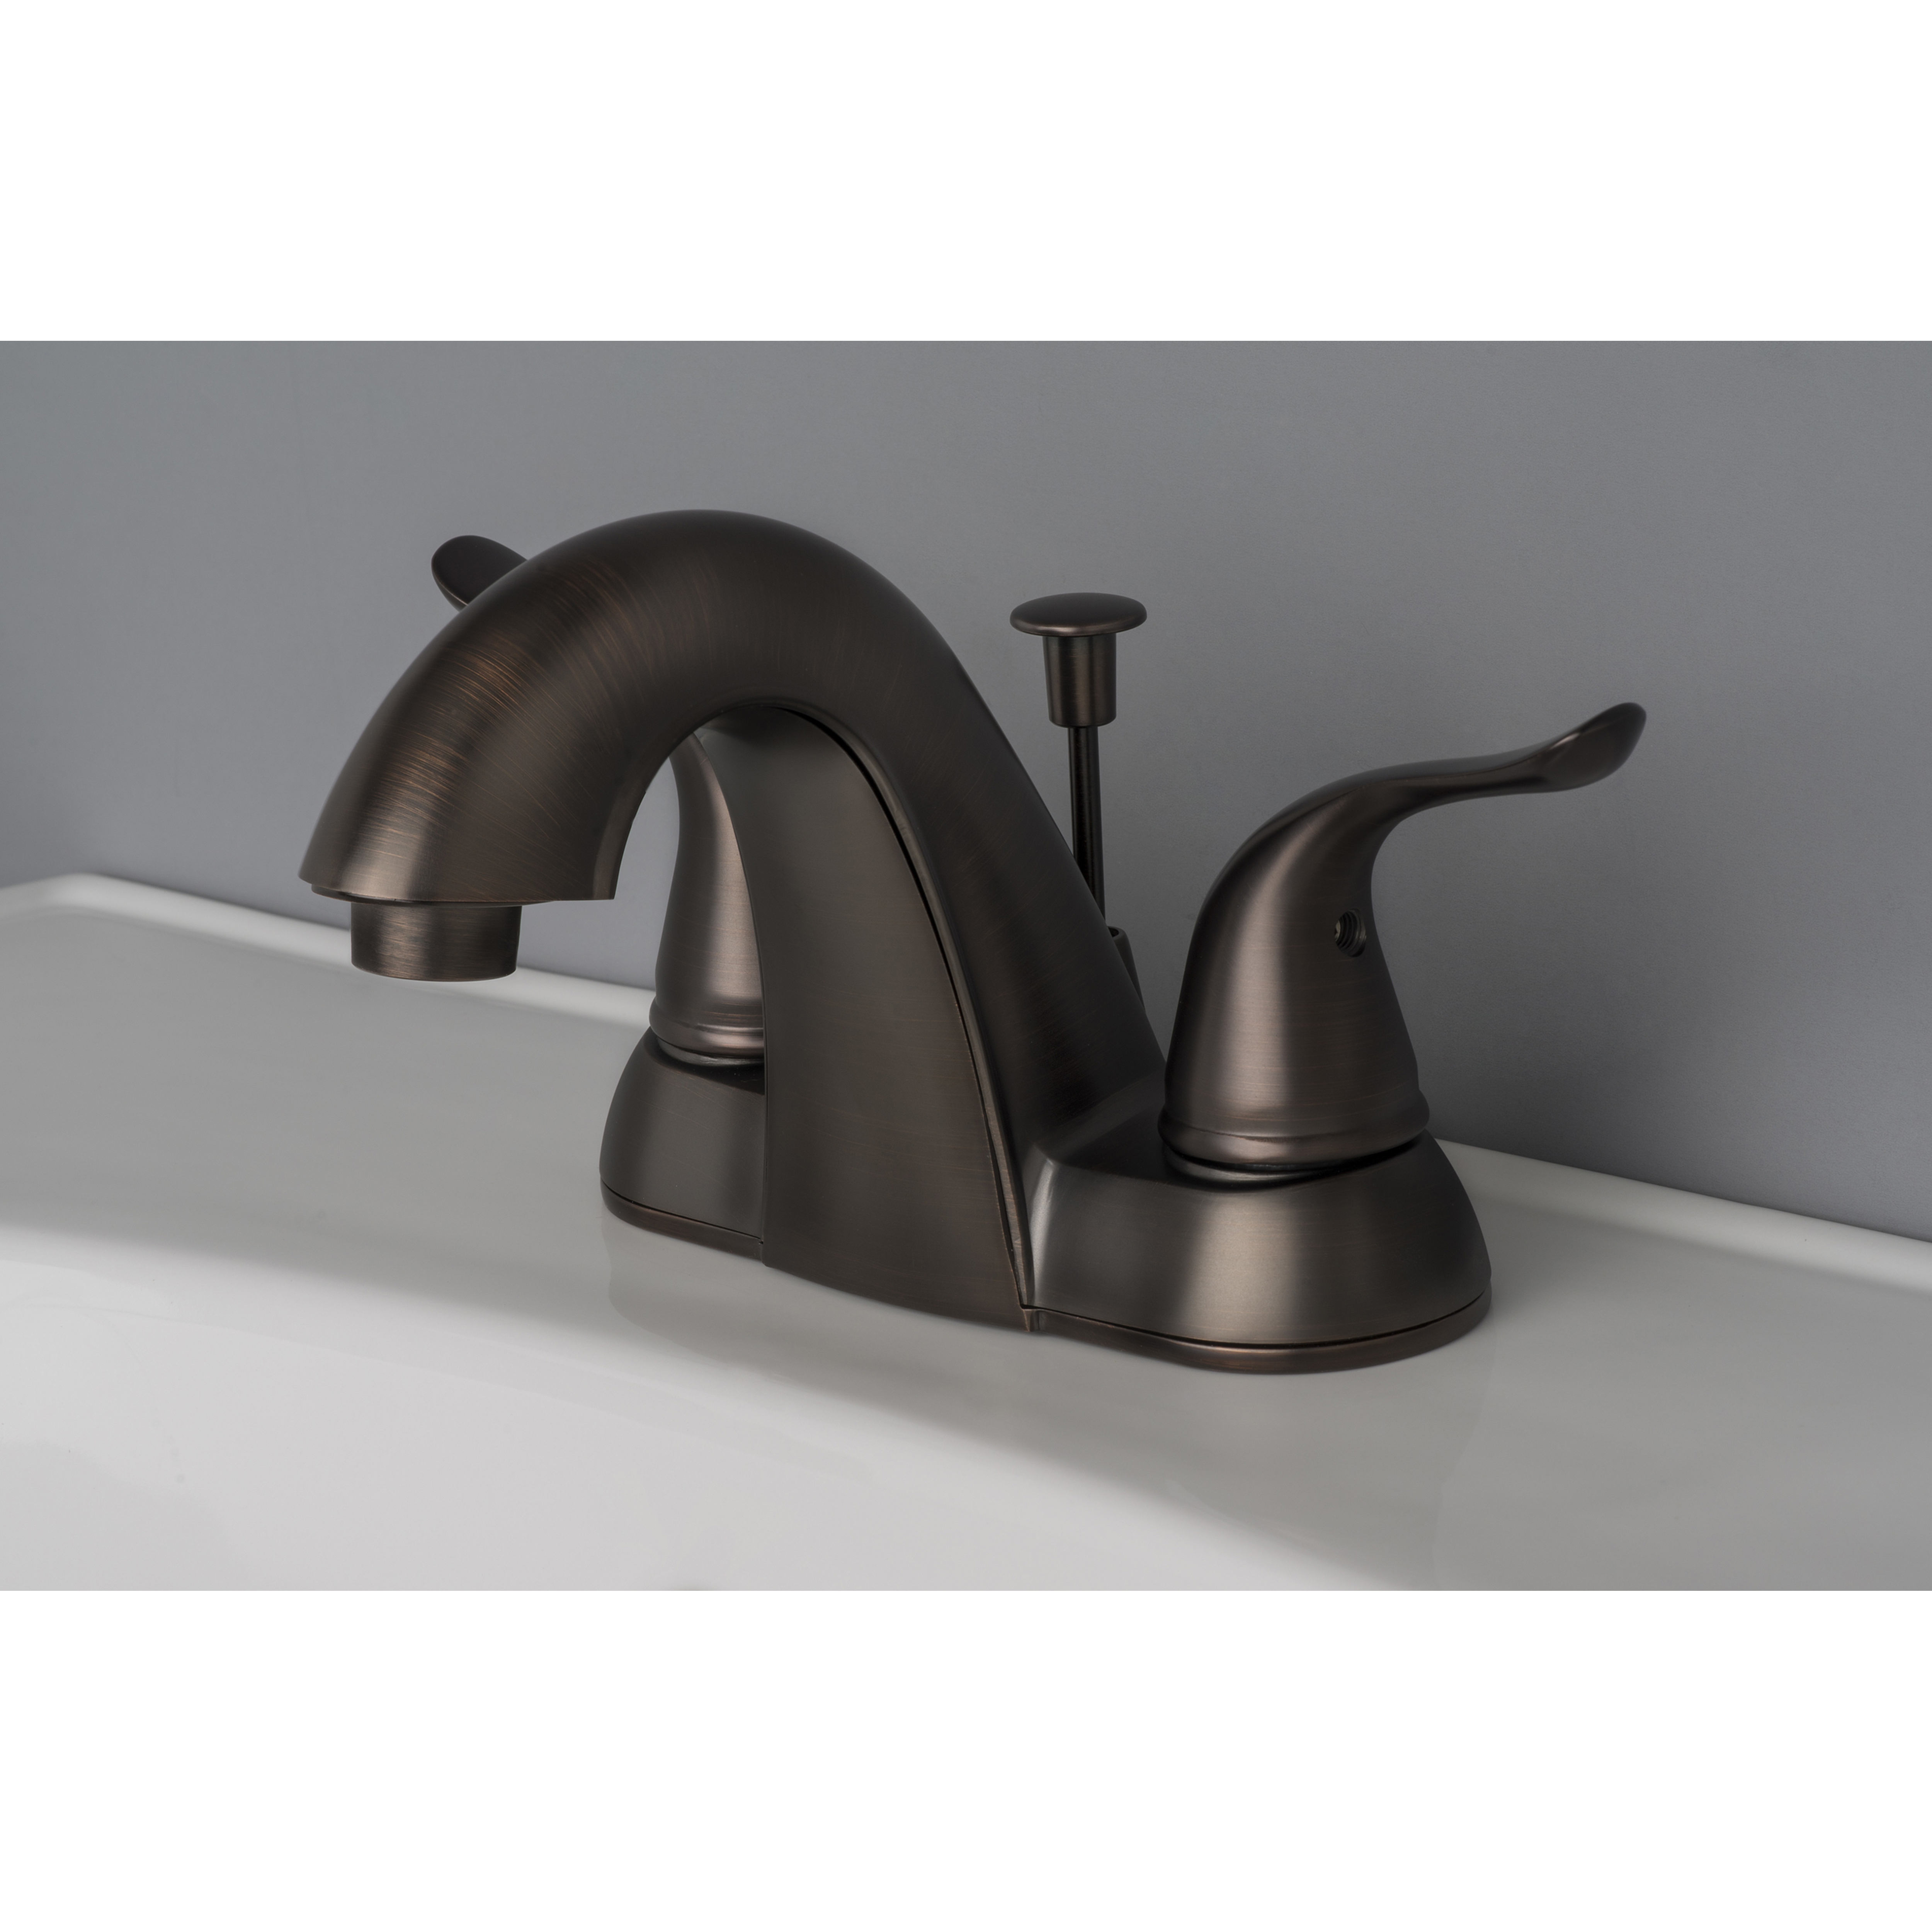 brushed bronze kitchen faucet teal rugs contemporary bathroom vanity sink 4 quot centerset lavatory